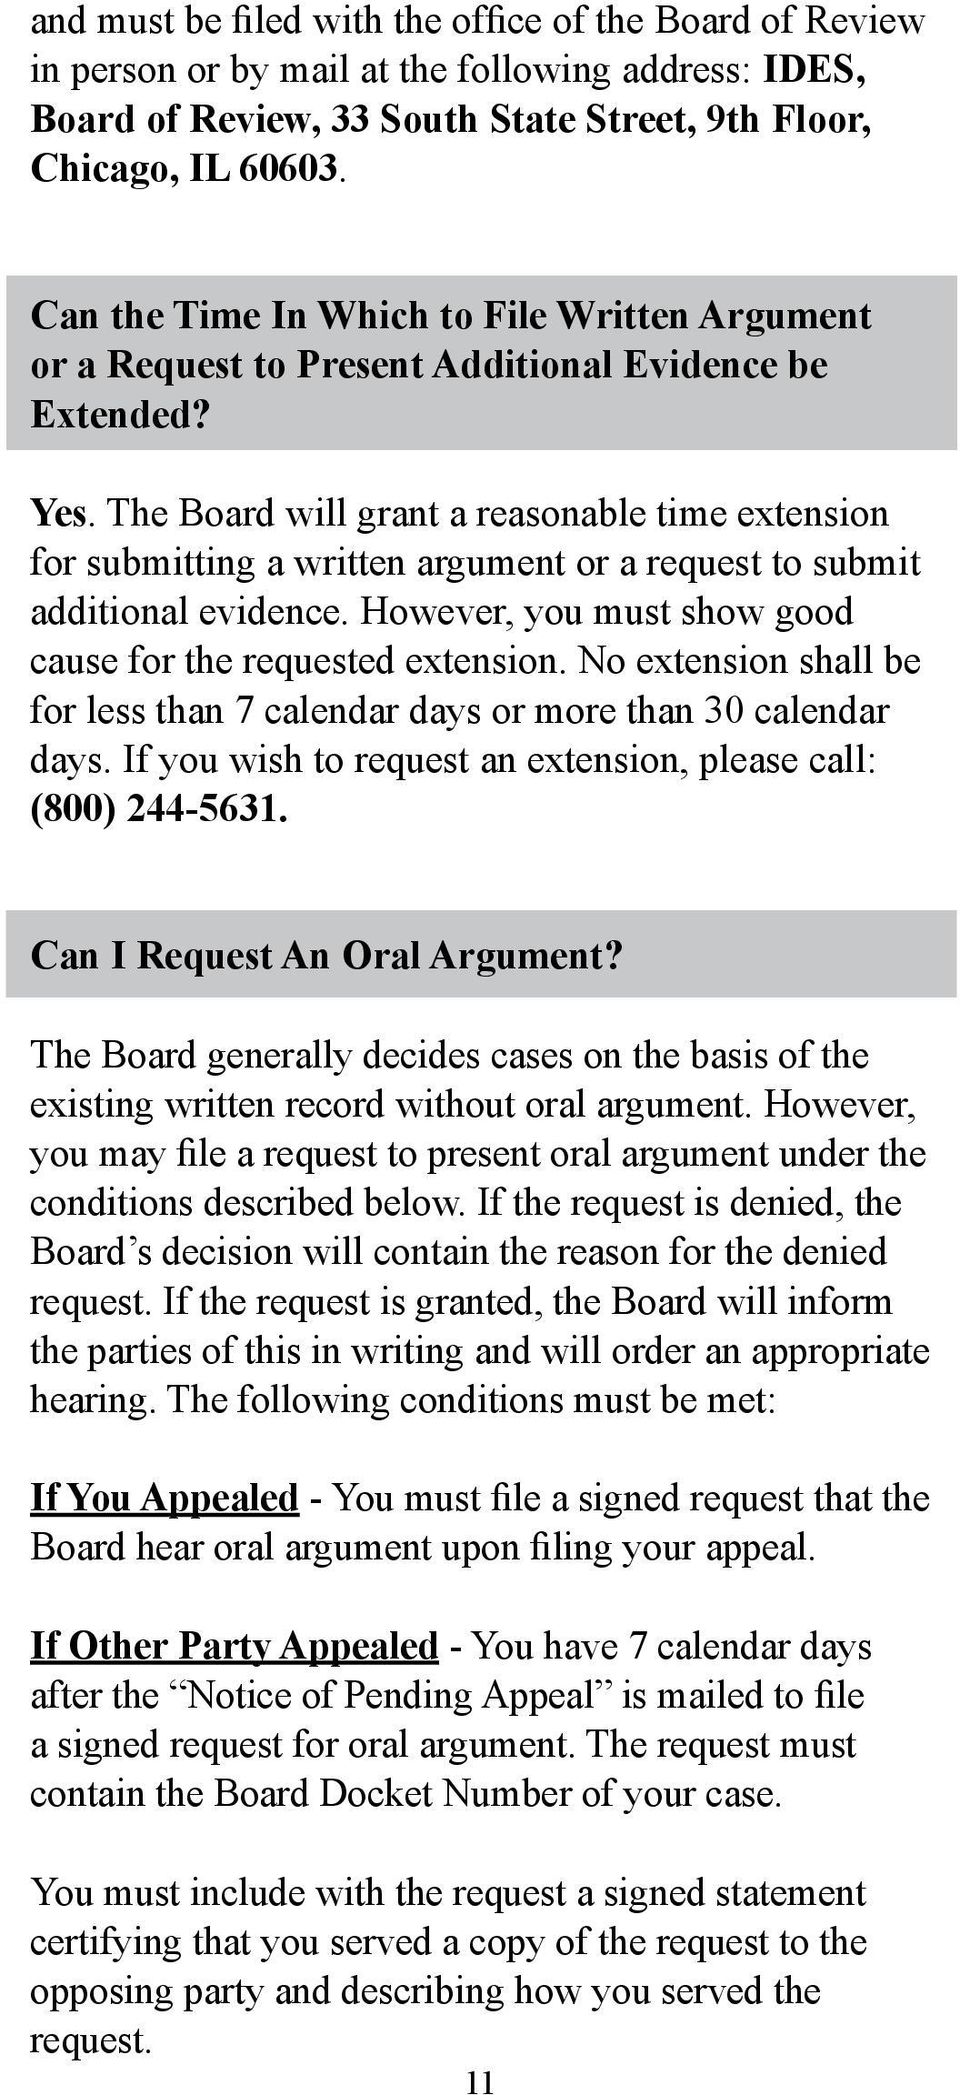 The Board will grant a reasonable time extension for submitting a written argument or a request to submit additional evidence. However, you must show good cause for the requested extension.